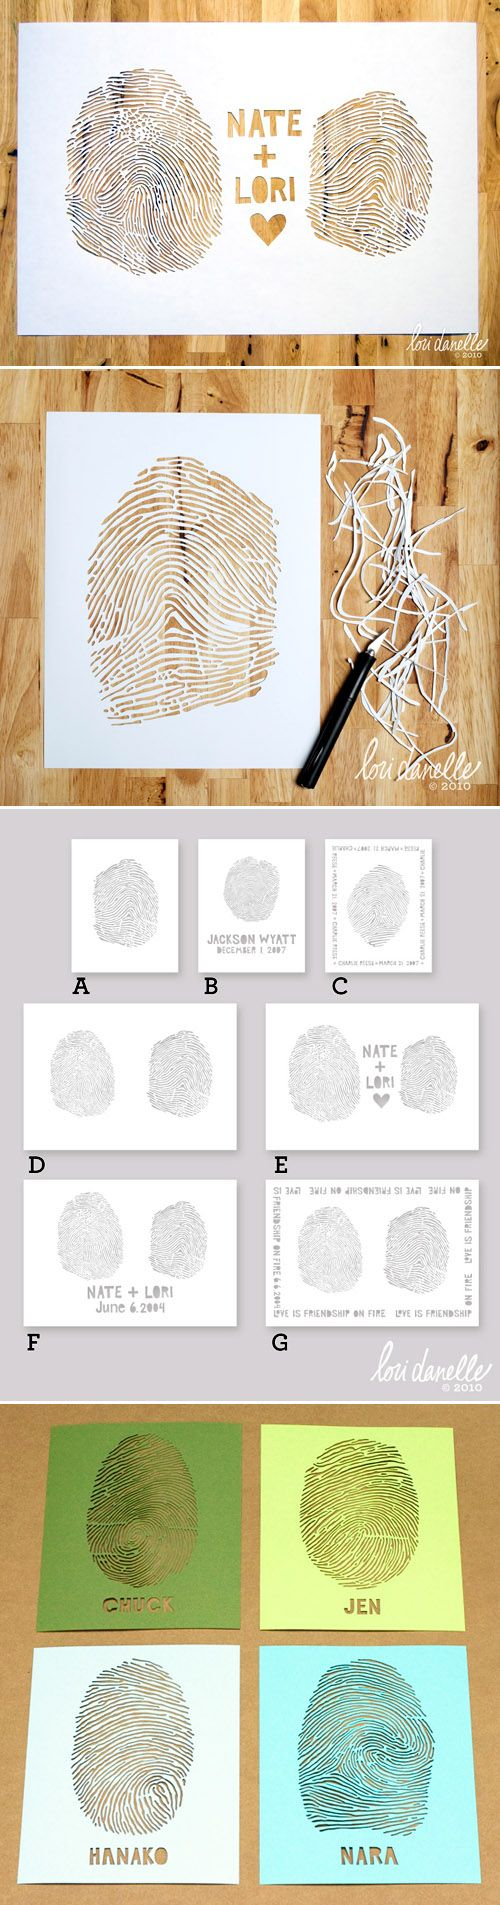 Custom cut fingerprint art pieces! So cool and such a great idea for married couples. :)